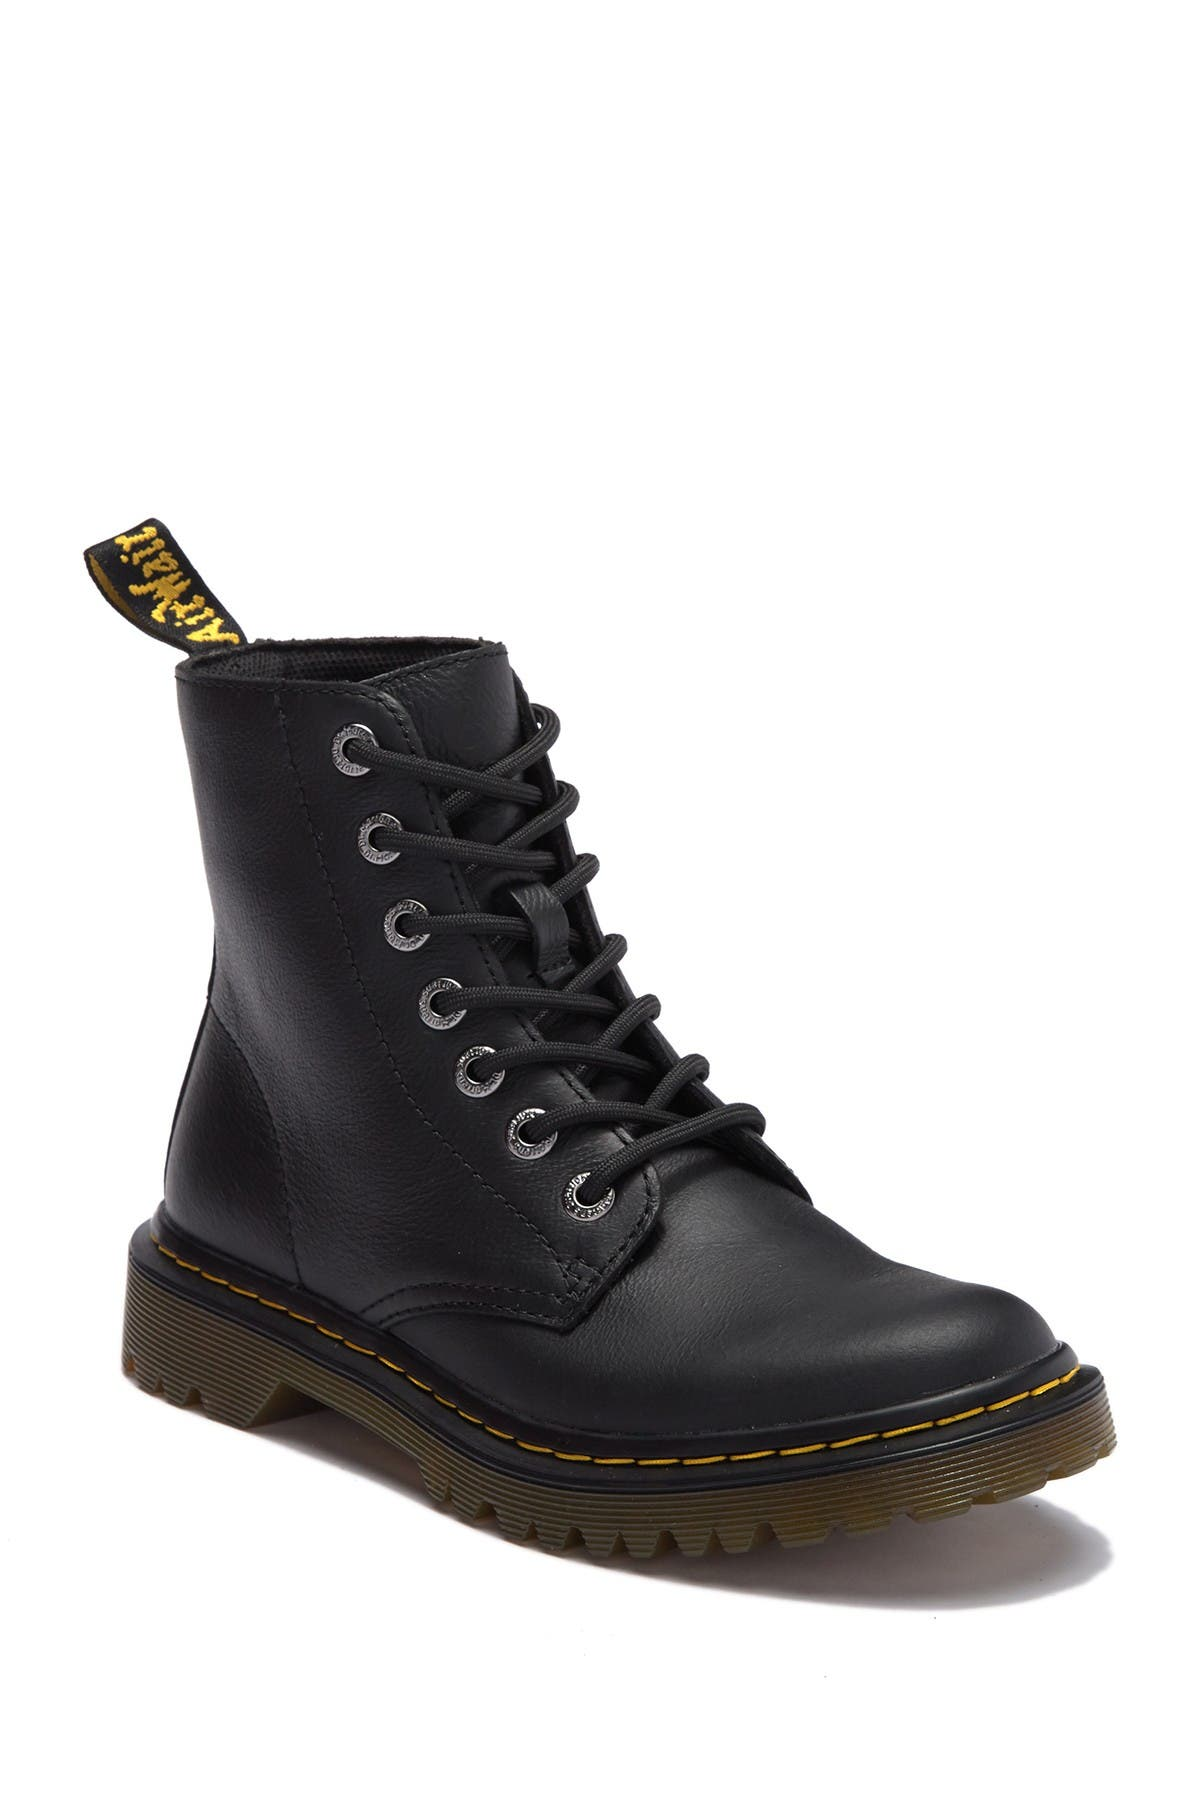 Image of Dr. Martens Luana Leather Combat Boot